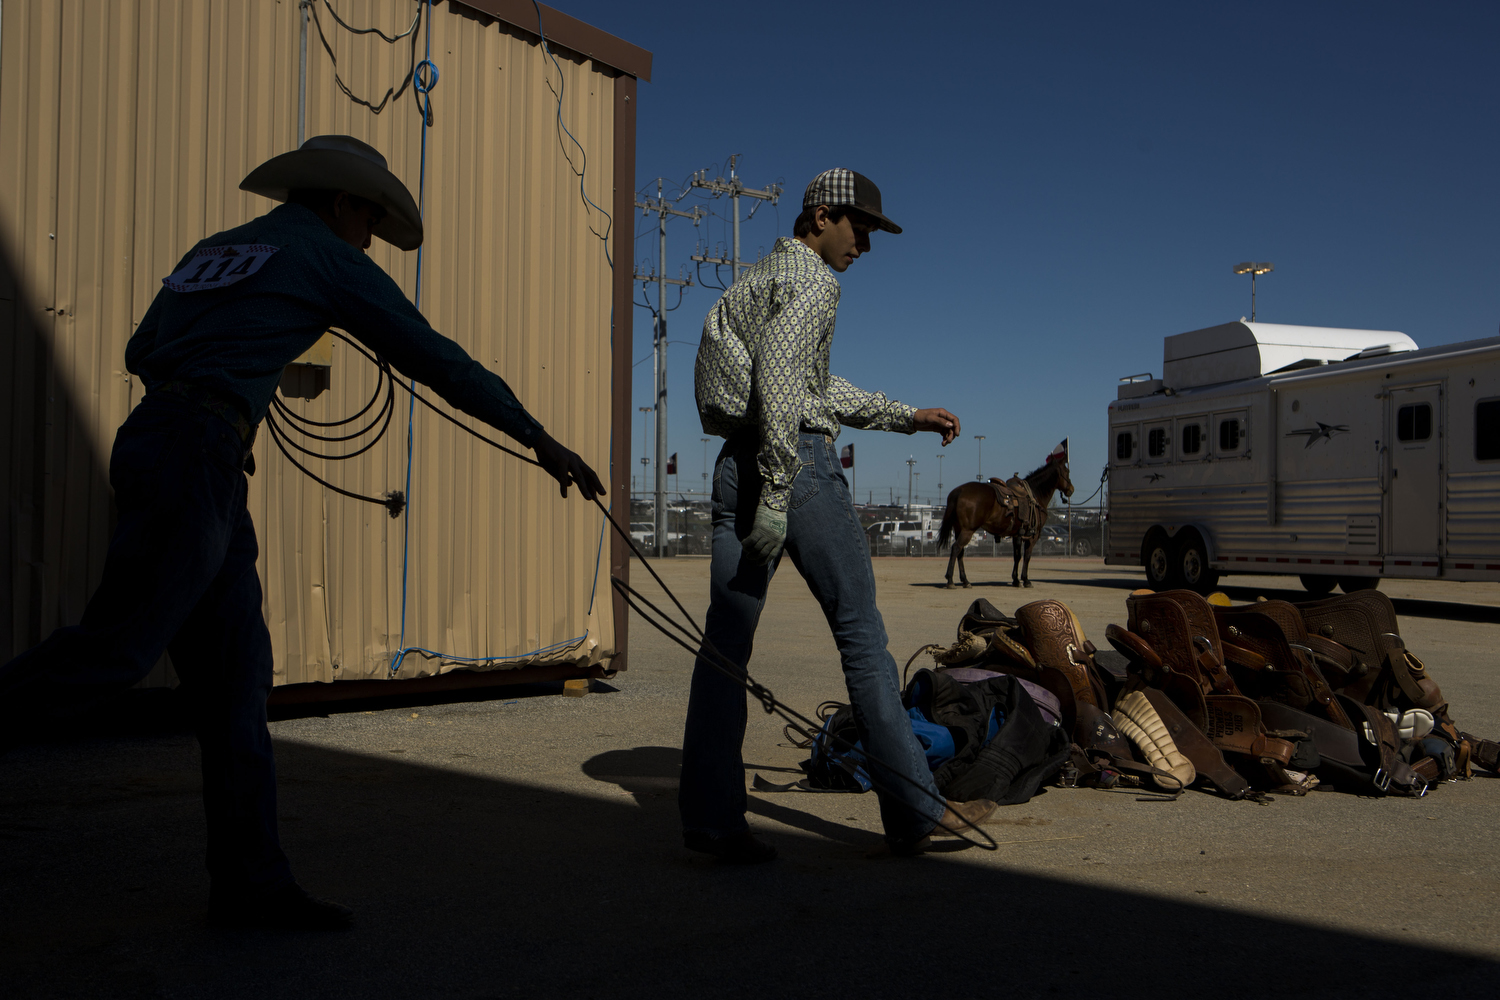 Cash Fretwell practices roping on his friend Brice Bauer's feet at the San Antonio Stock Show and Rodeo in San Antonio, TX on Wednesday, February 18, 2015.  They both are 14 and from Pleasanton, TX.